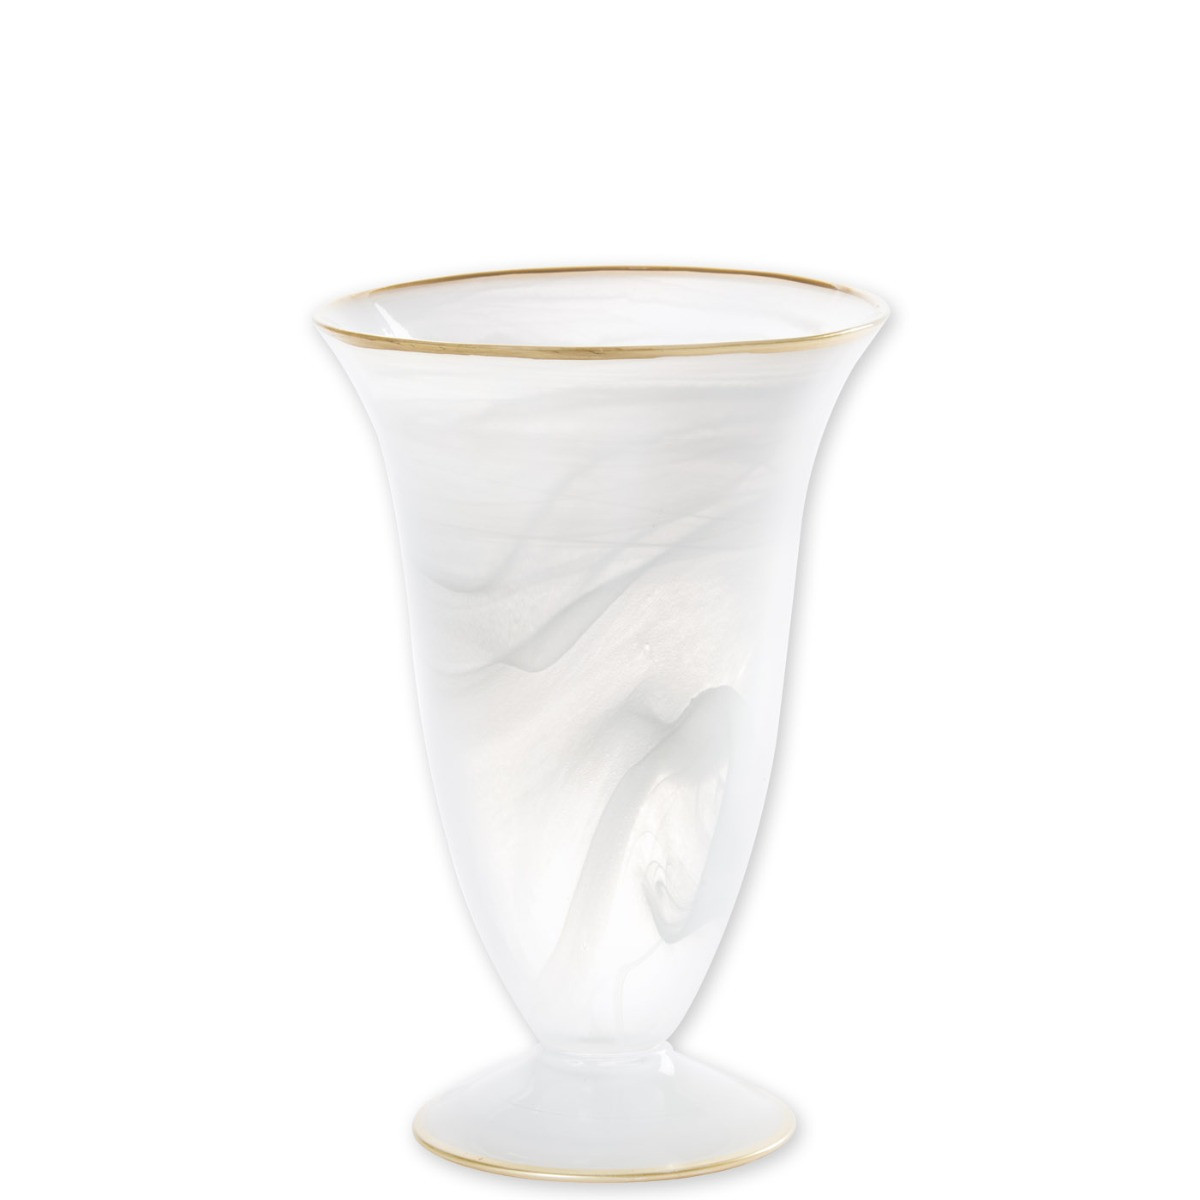 tortoise shell vase of alabaster white w gold edge medium footed vase vietri in abs 5282w 1400 product image 1